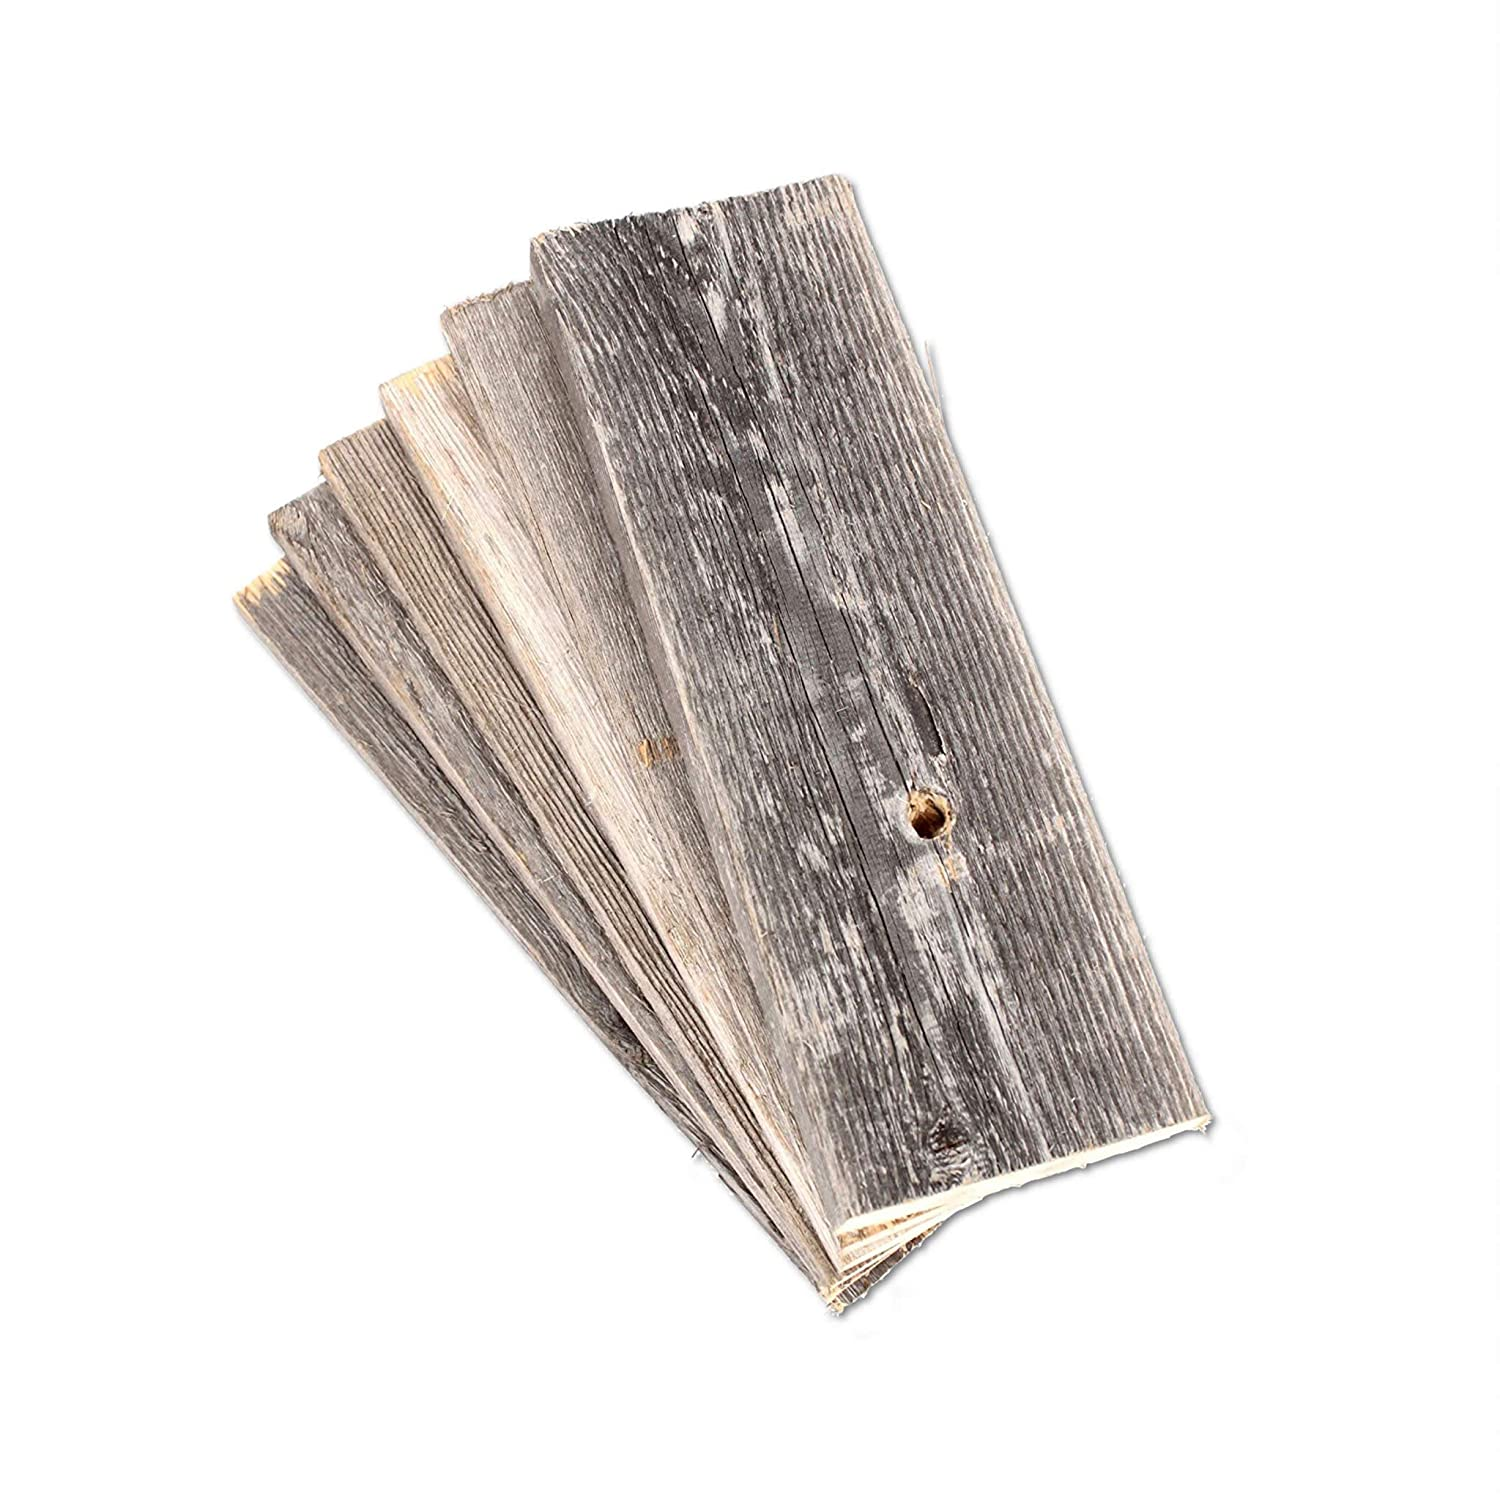 Rustic Farmhouse Reclaimed Barn Wood Bundle | 36 inch | Wood Plank | Wall Panels | Remodeling | Weathered | DIY | Repurposed | Decoration | Shiplap | Pallet Planks | Pack of 6